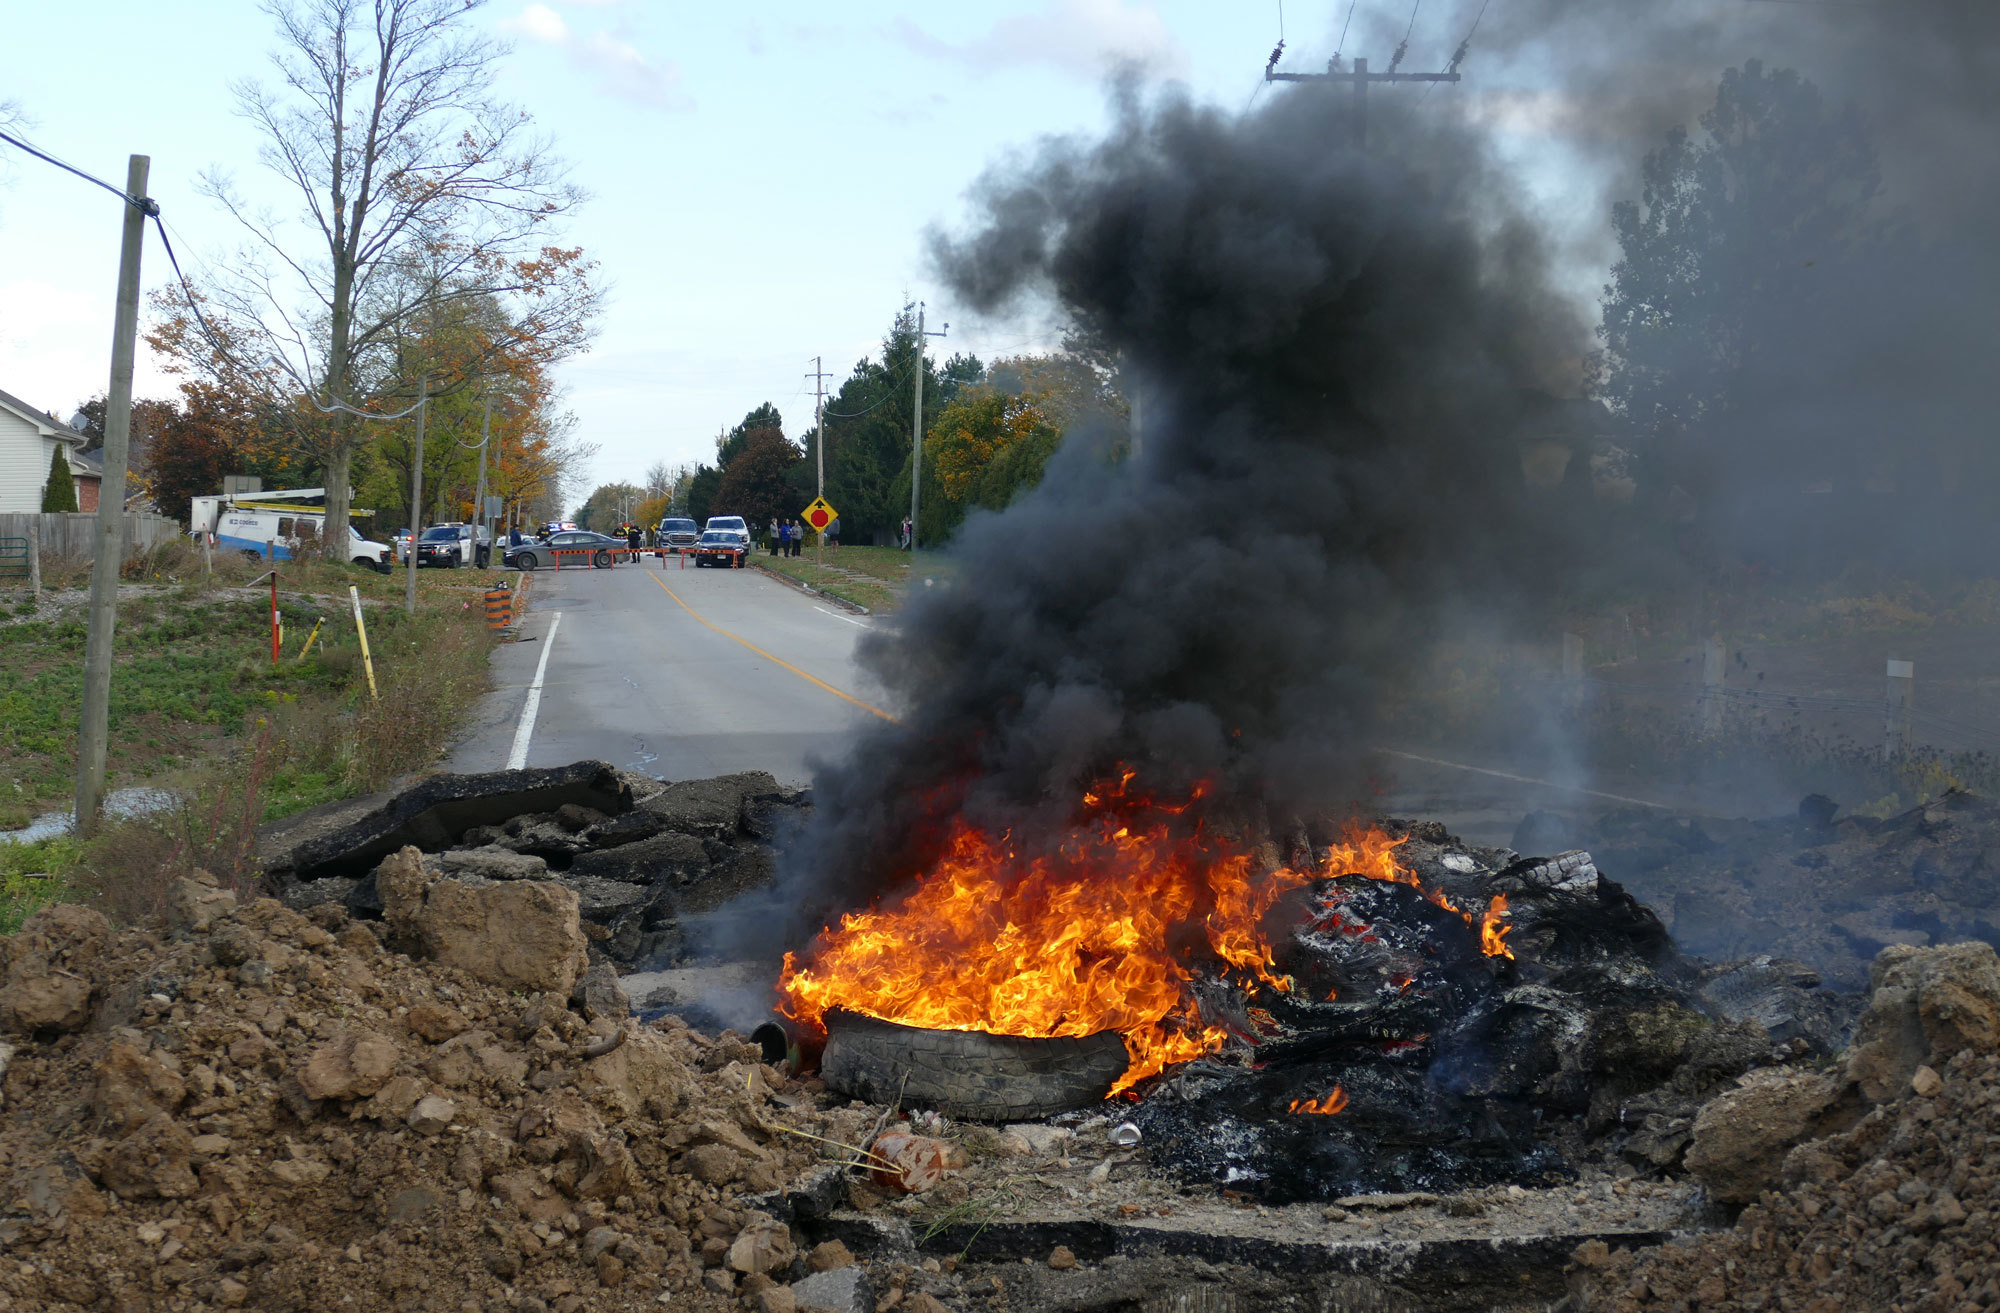 A tire fire set next to a trench dug in the road near the entrance to the McKenzie Meadows development, renamed 1492 Land Back Lane. (Jorge Barrera/CBC)